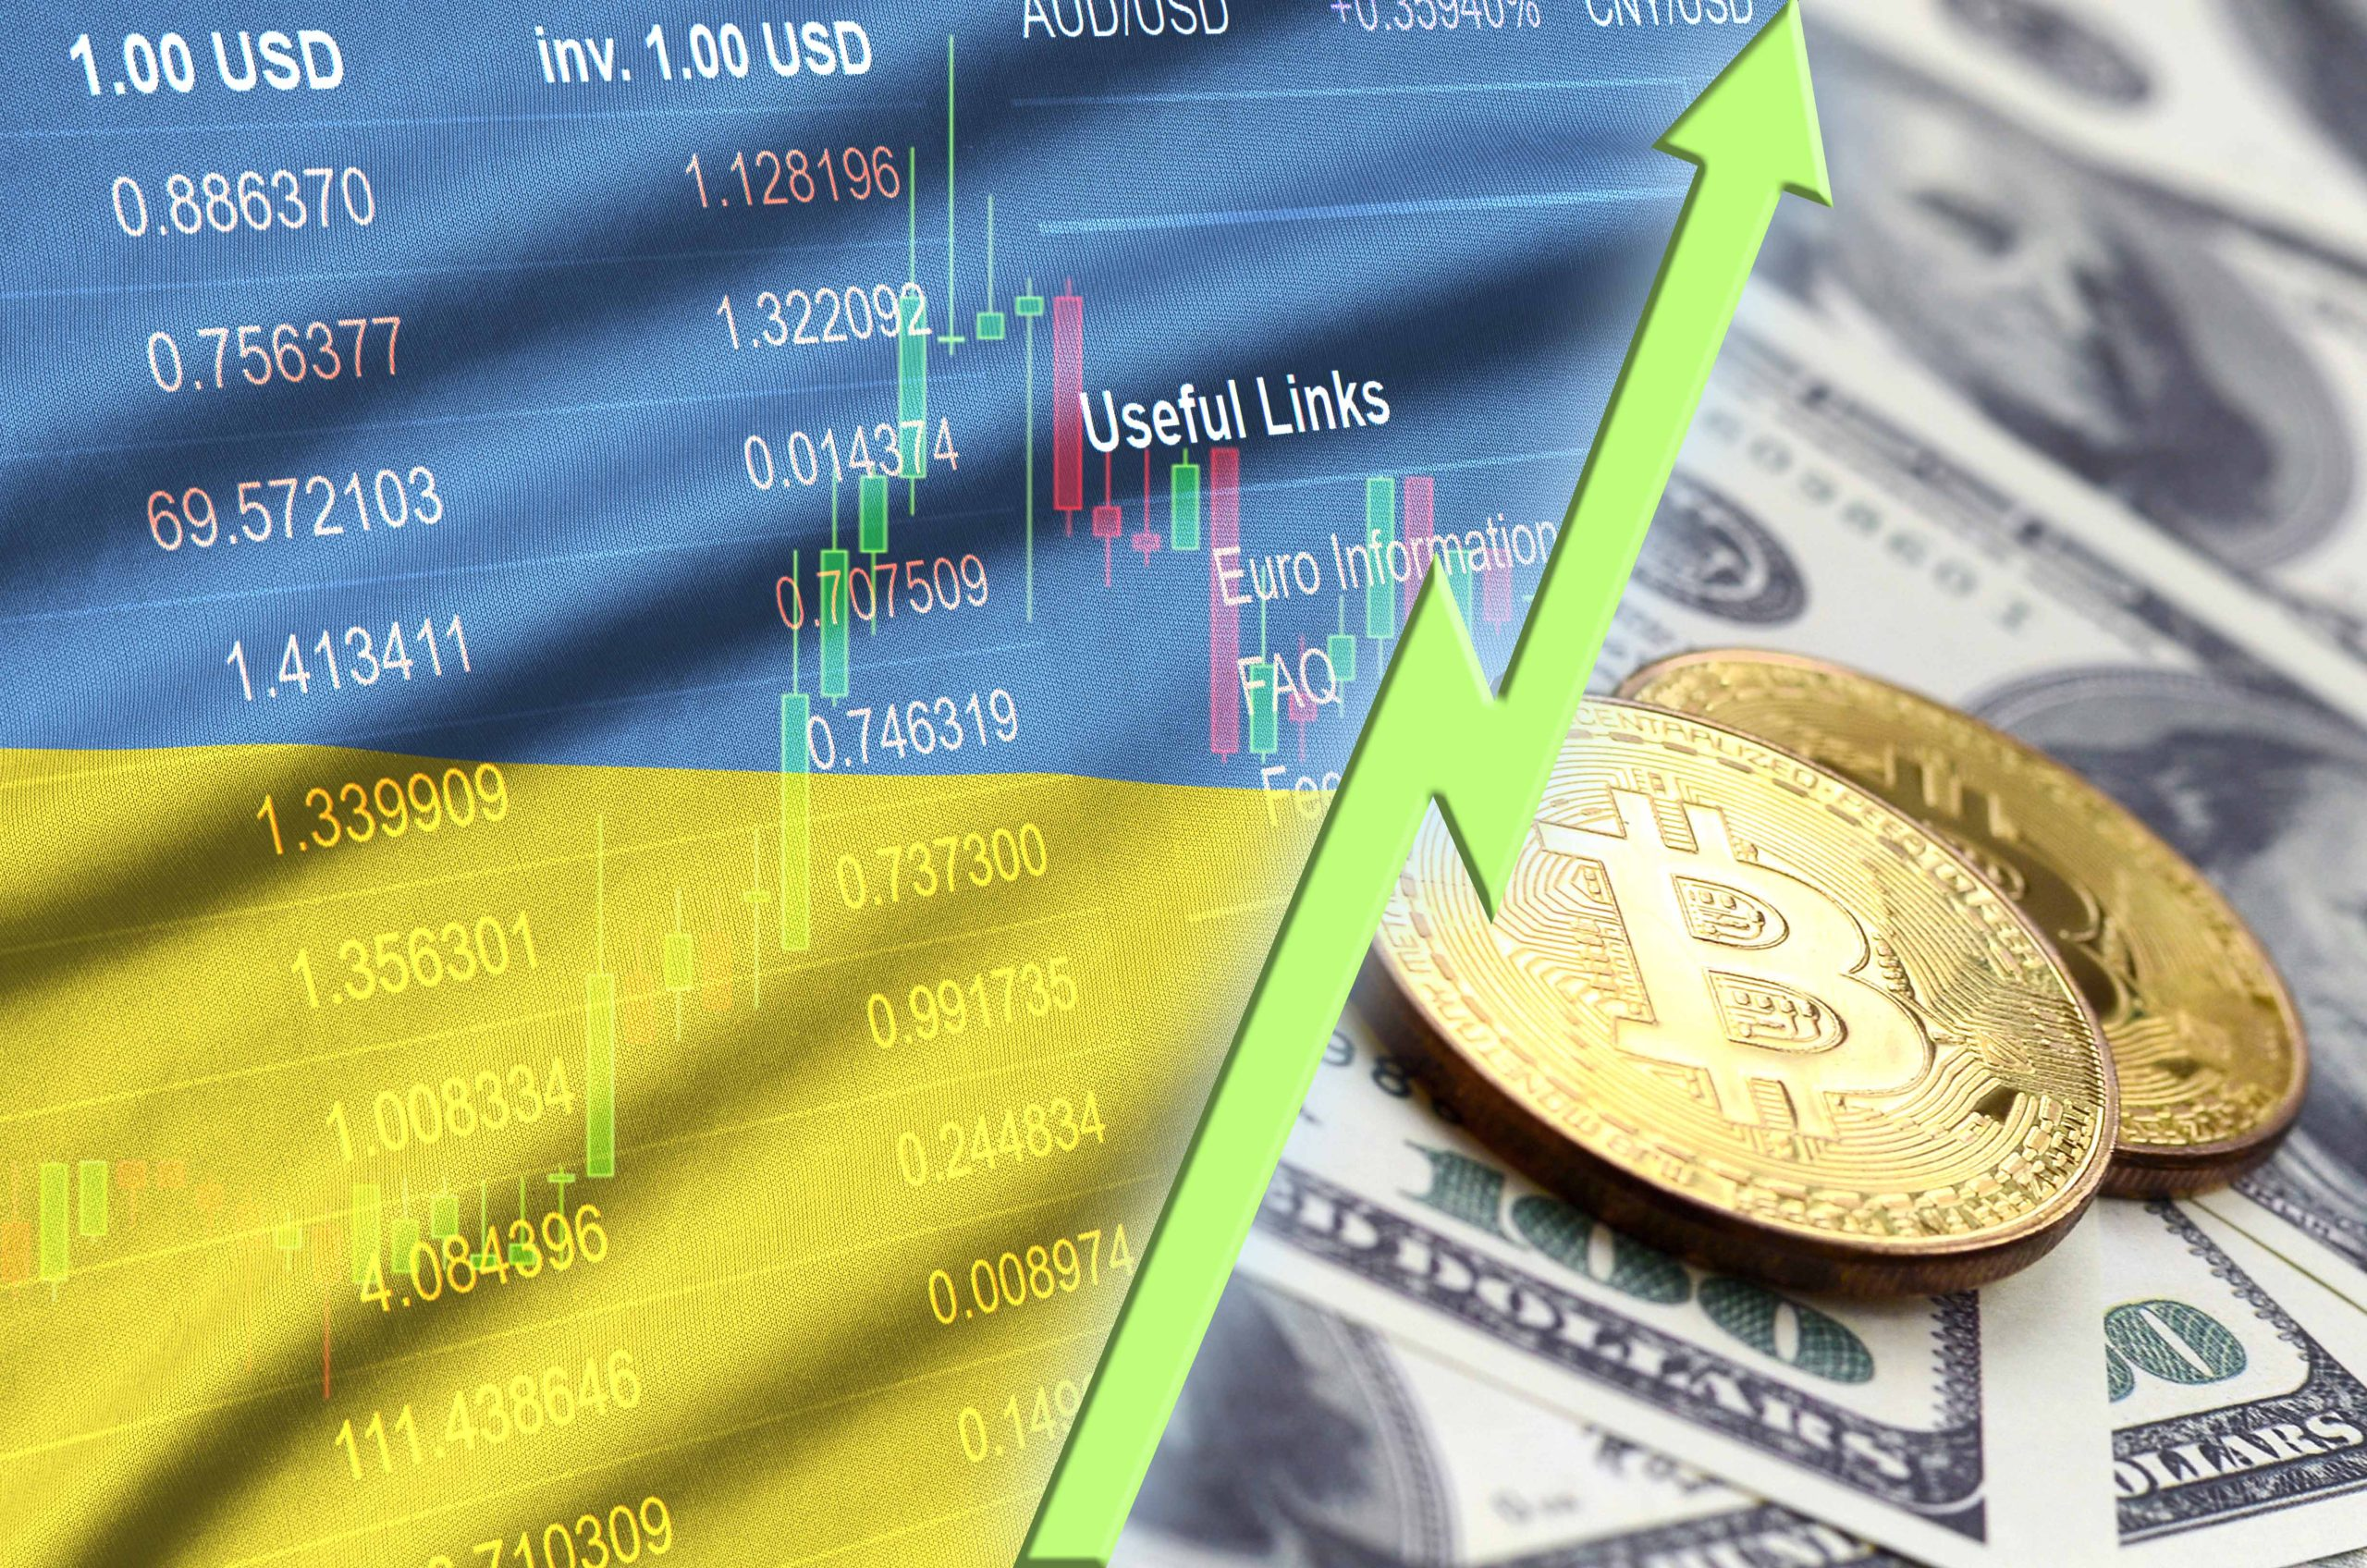 Ukraine wants to boost the new digital economy and build a top crypto jurisdiction